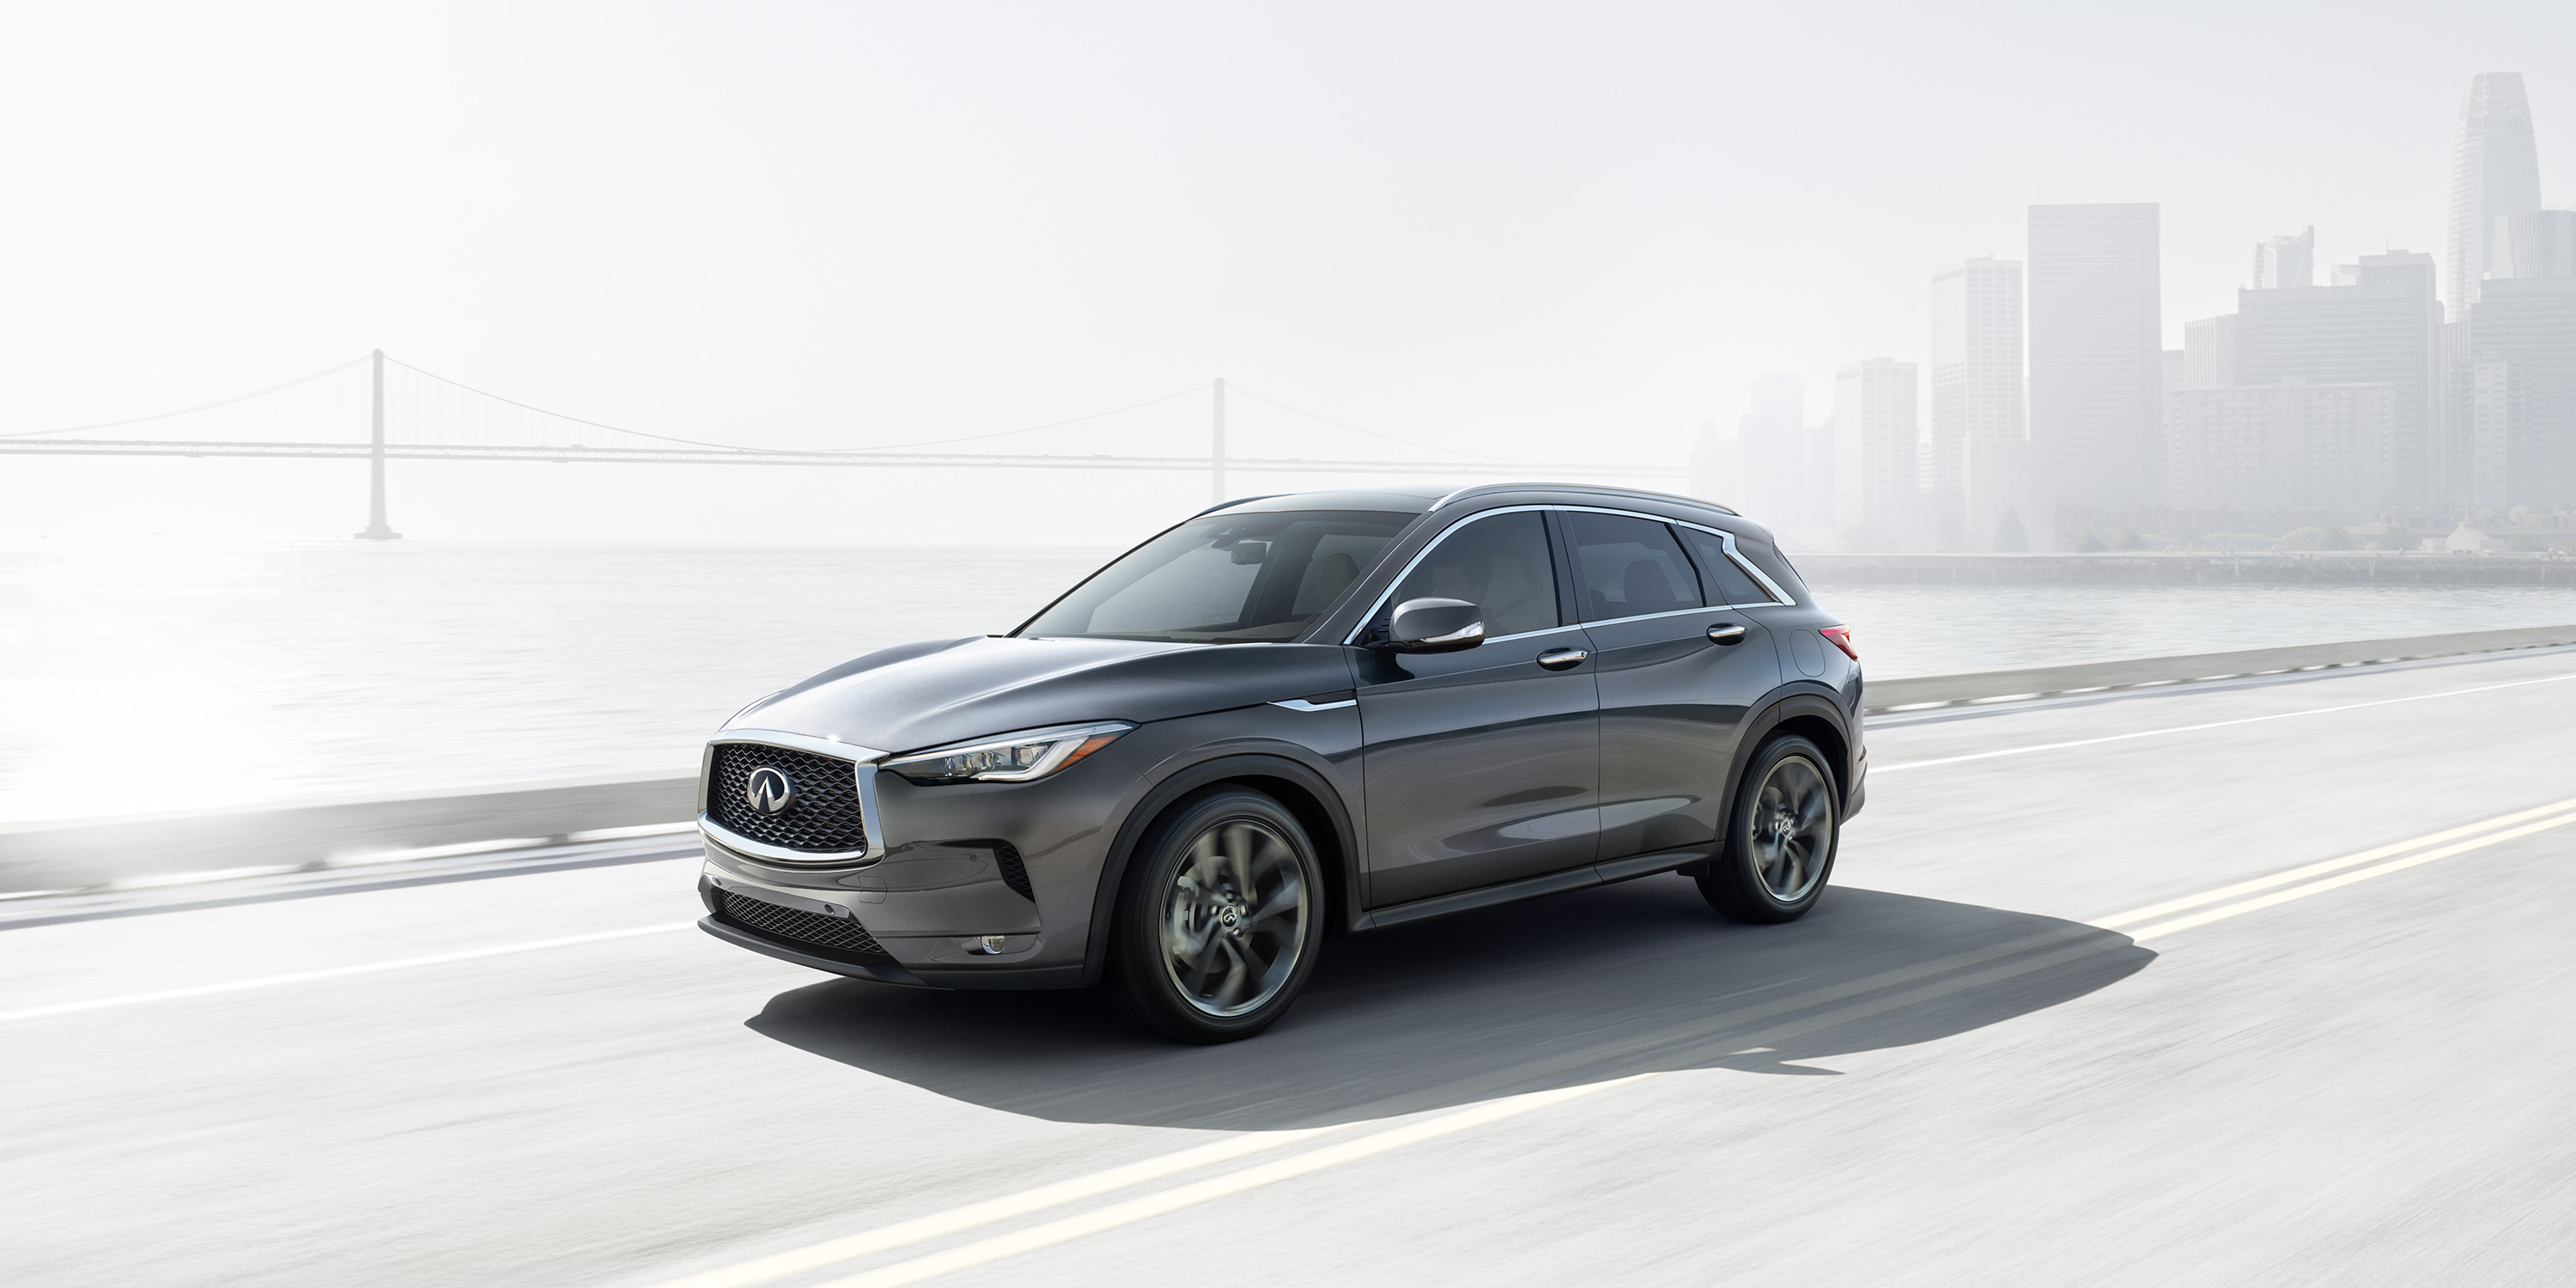 66 The Best The Infiniti Qx50 2019 Trunk Specs And Review Price